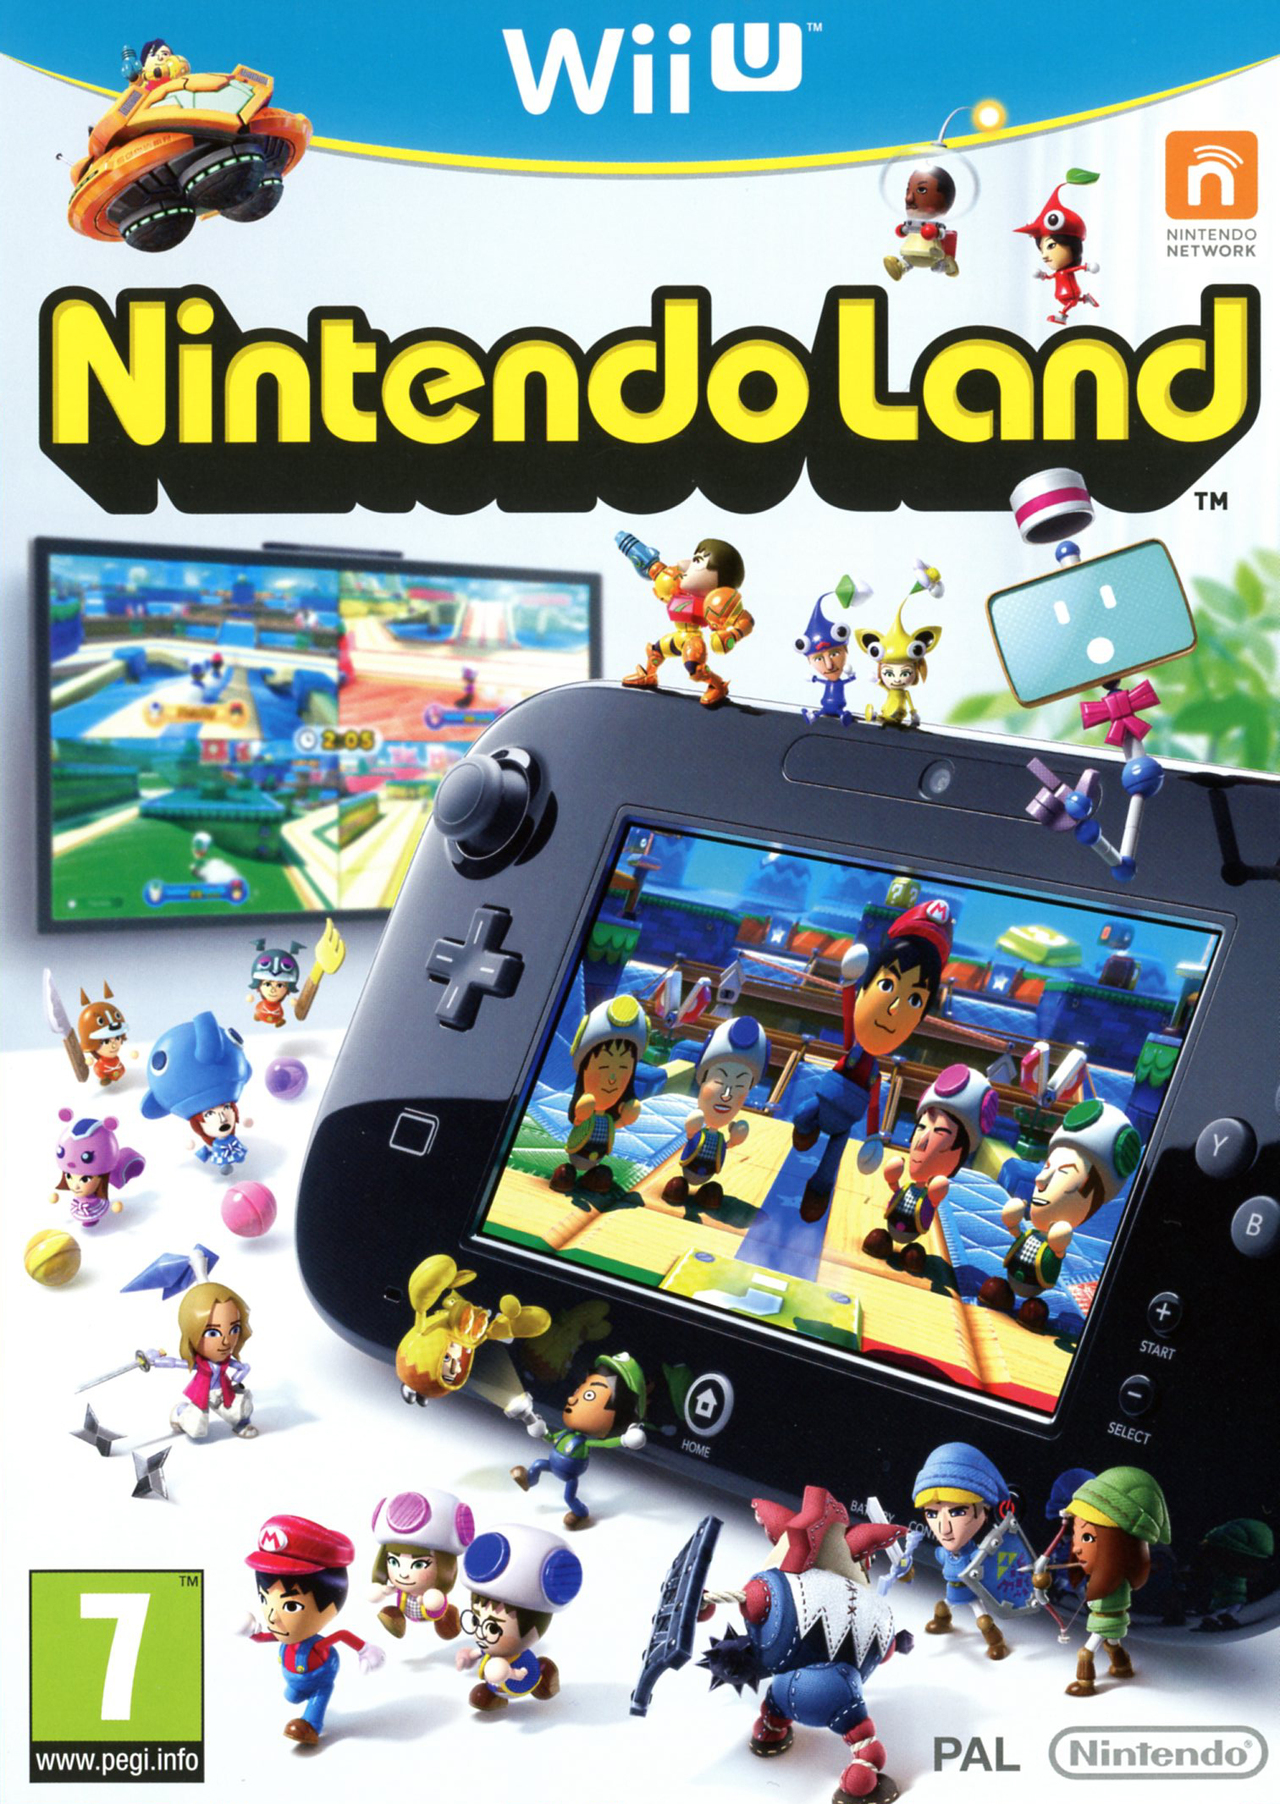 Out For Wii U Games : Nintendo land sur wii u jeuxvideo